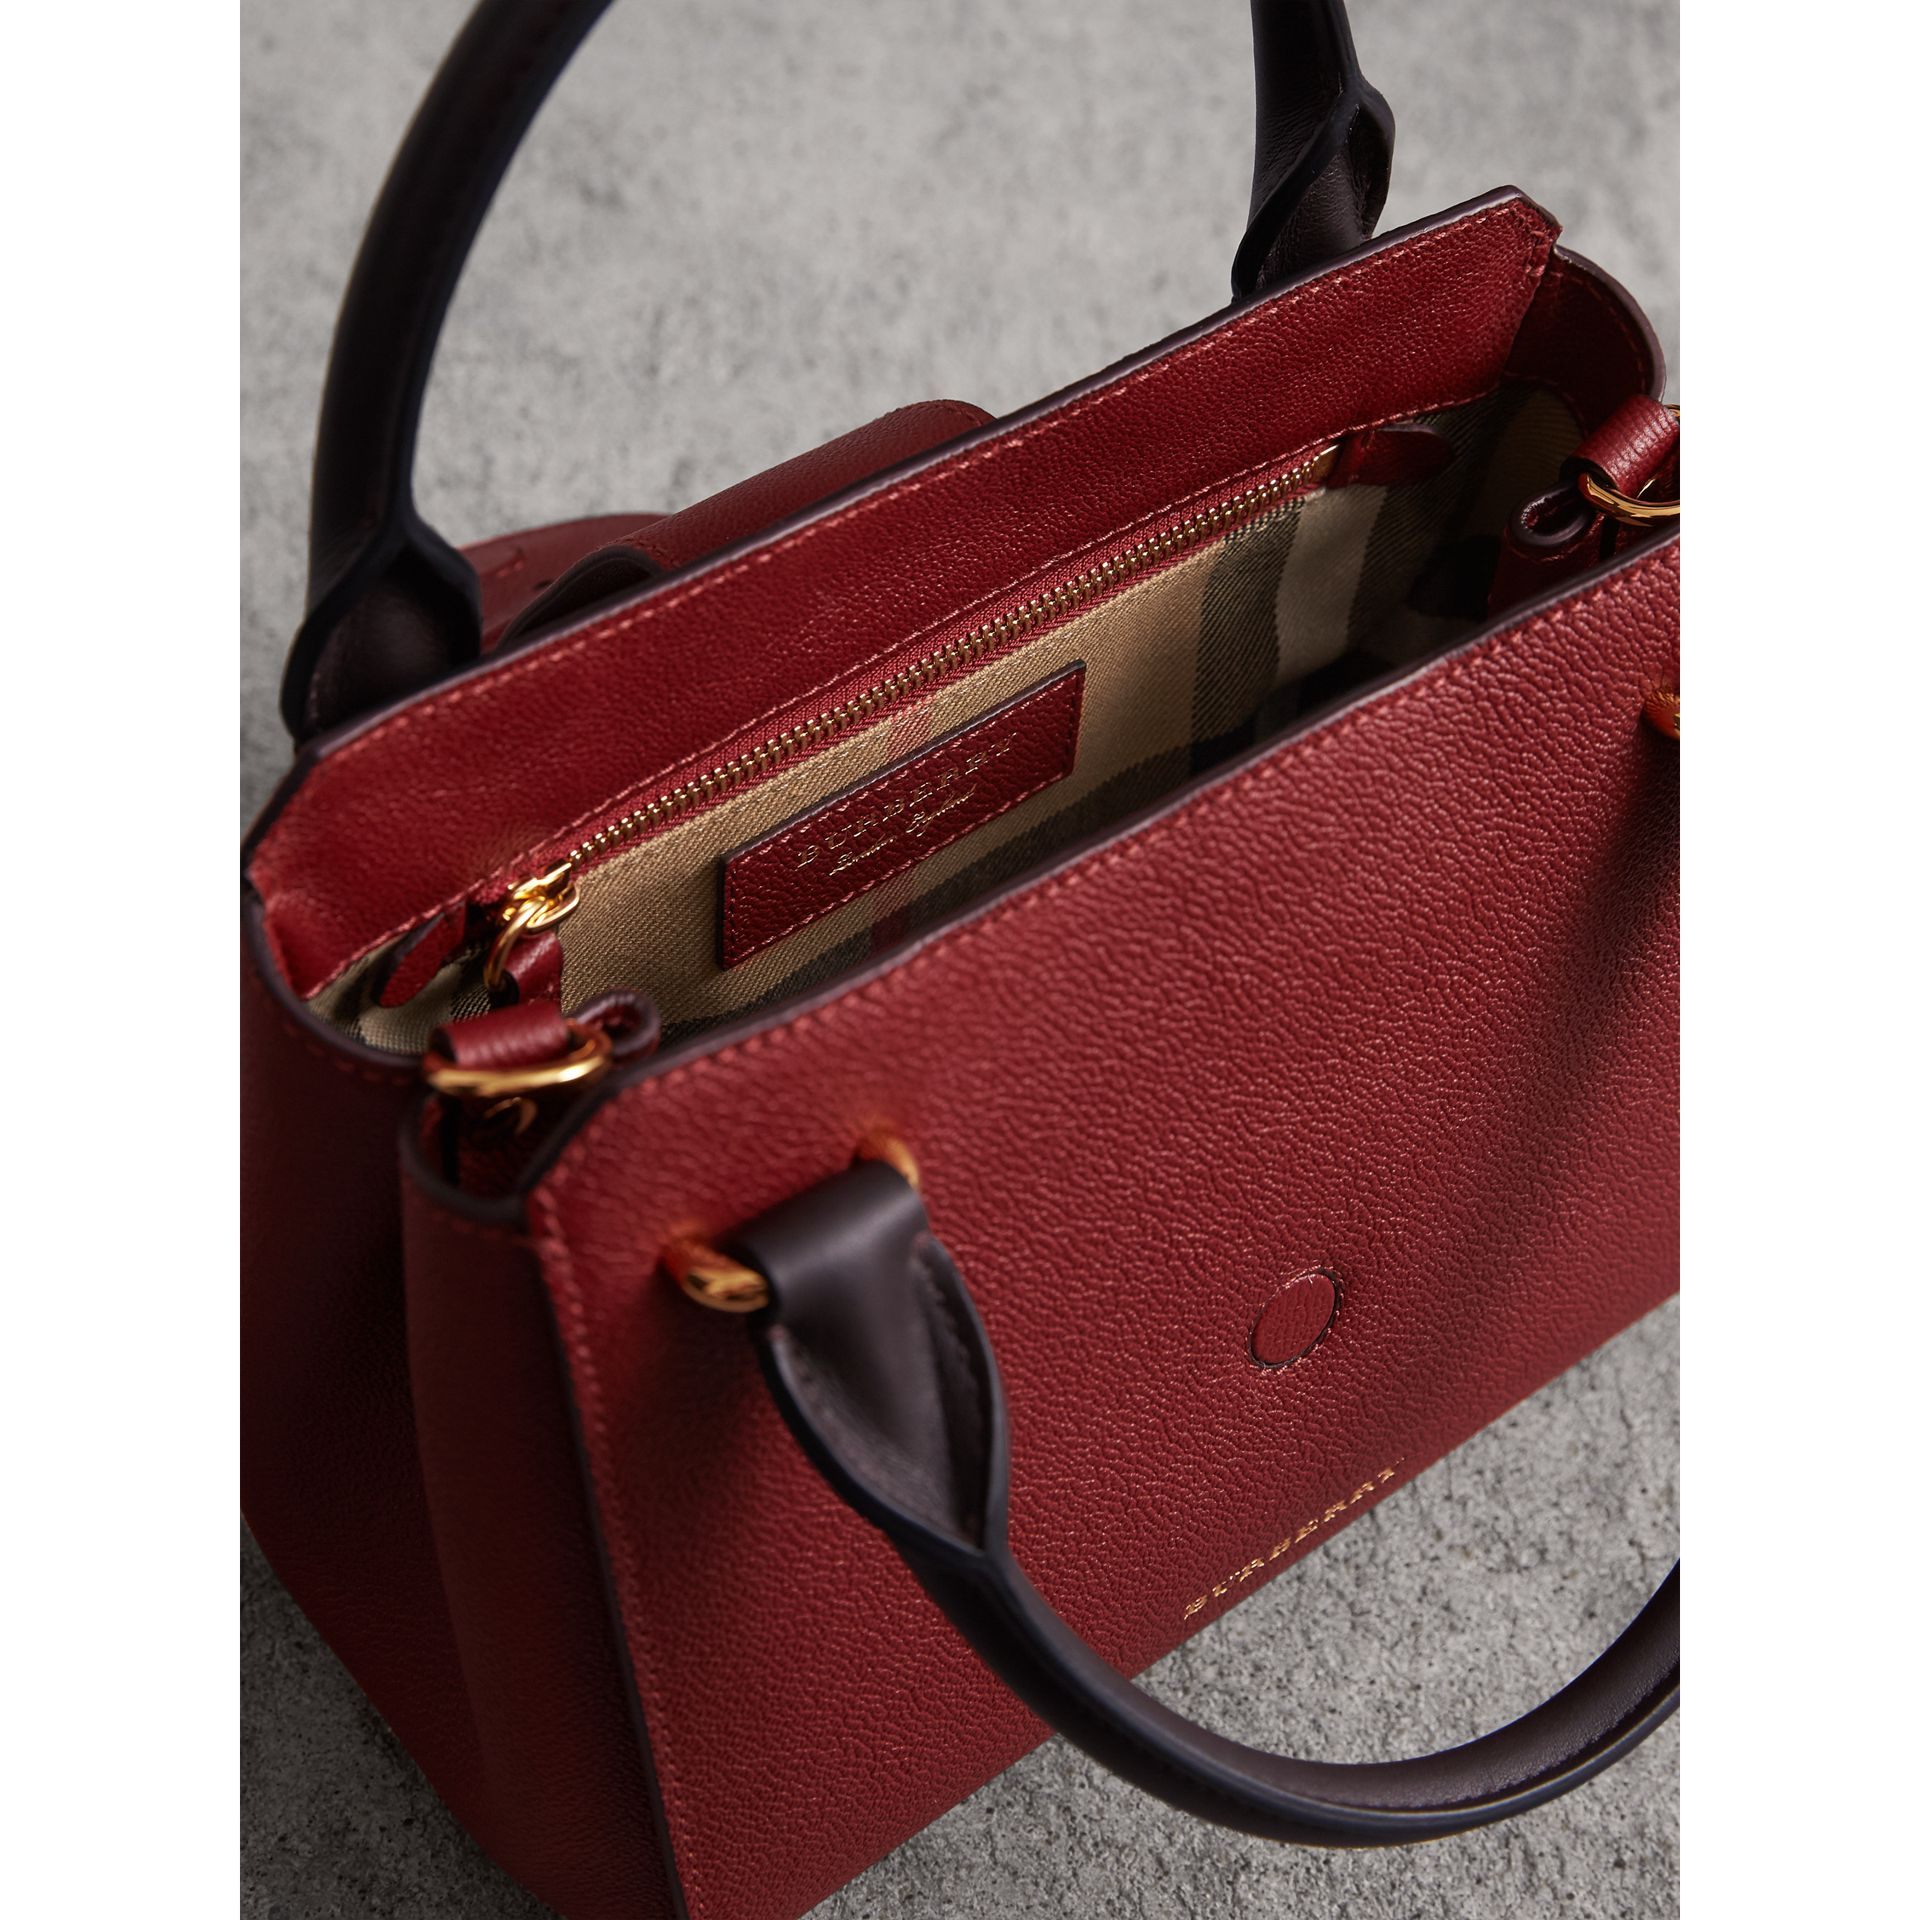 The Small Buckle Tote in Two-tone Leather in Burgundy - Women | Burberry - gallery image 5